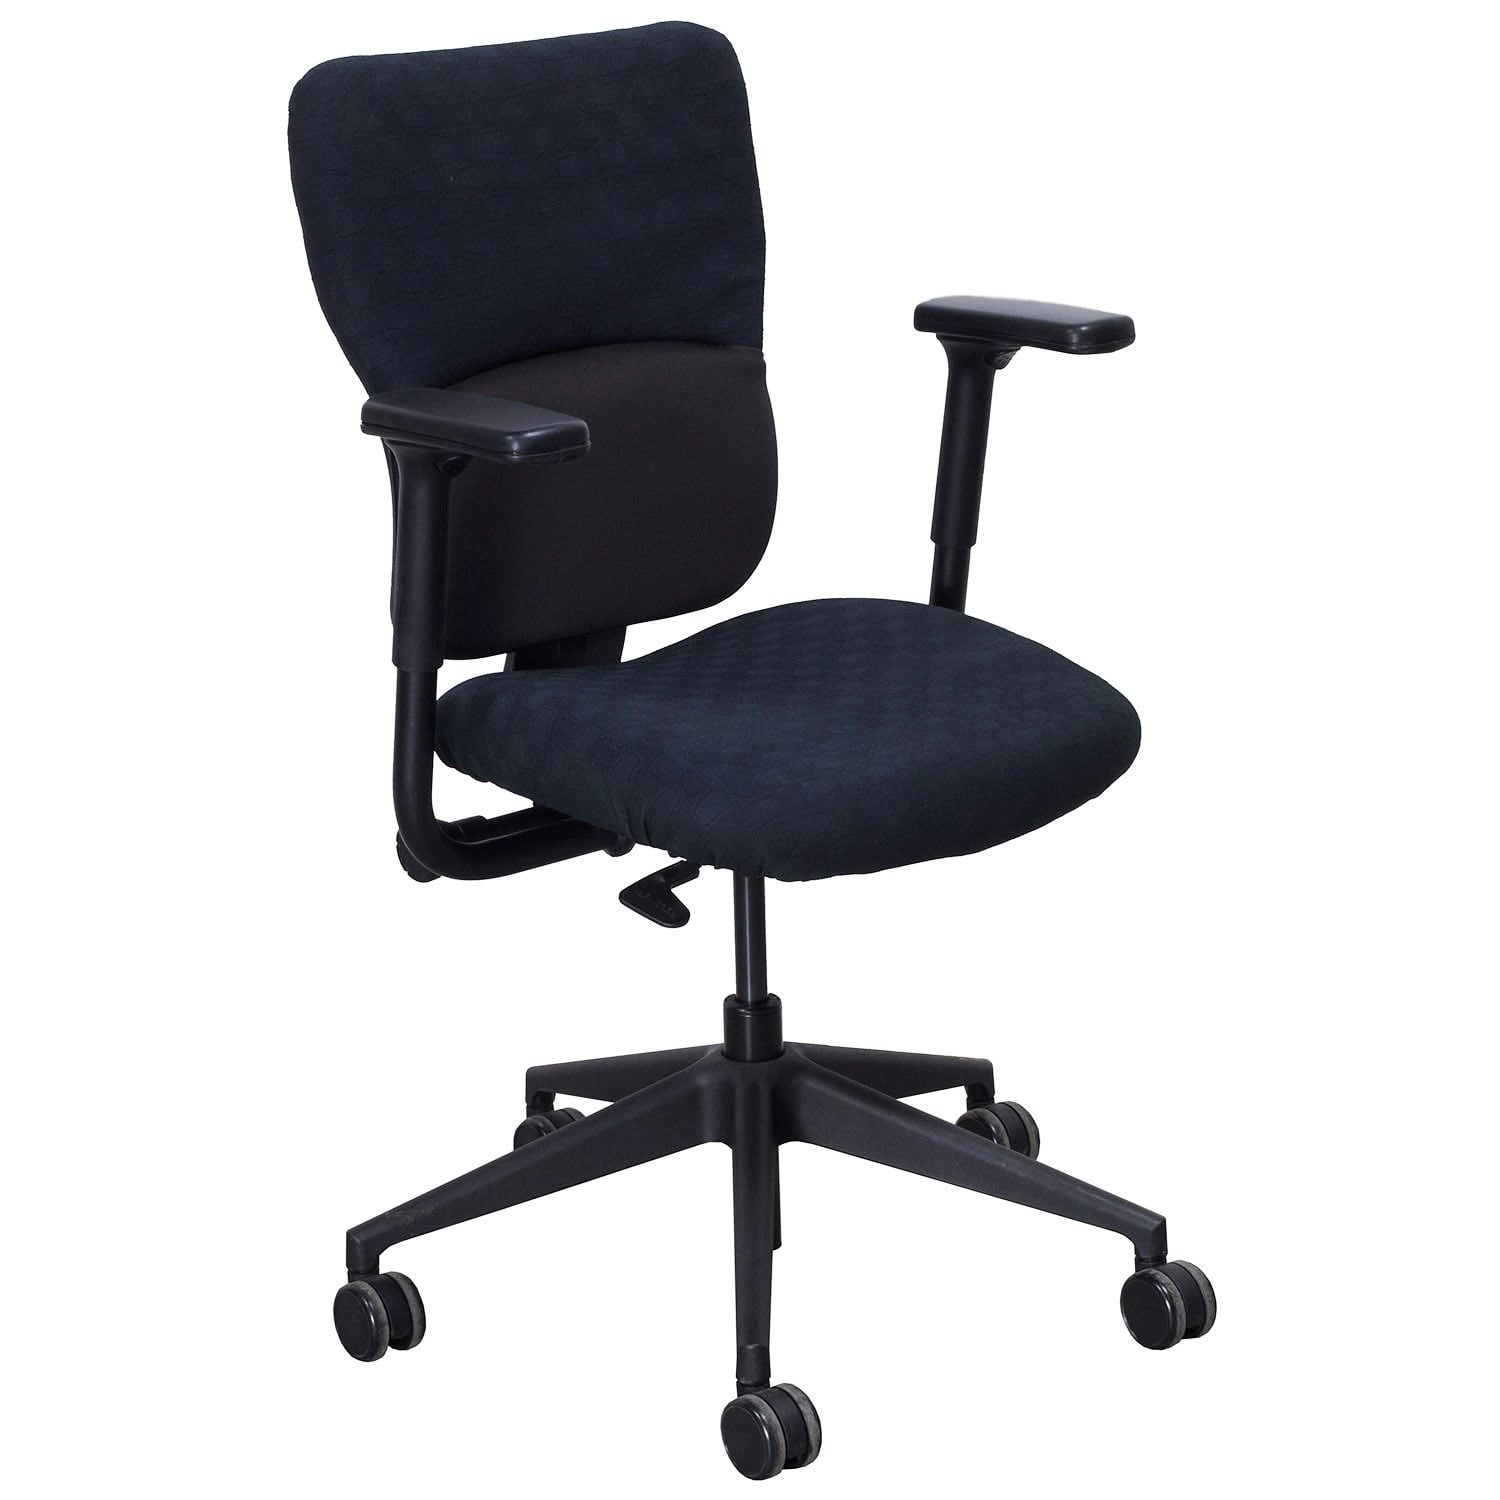 Steelcase Chairs Steelcase Turnstone Let 39s B Used Task Chair Black Pattern